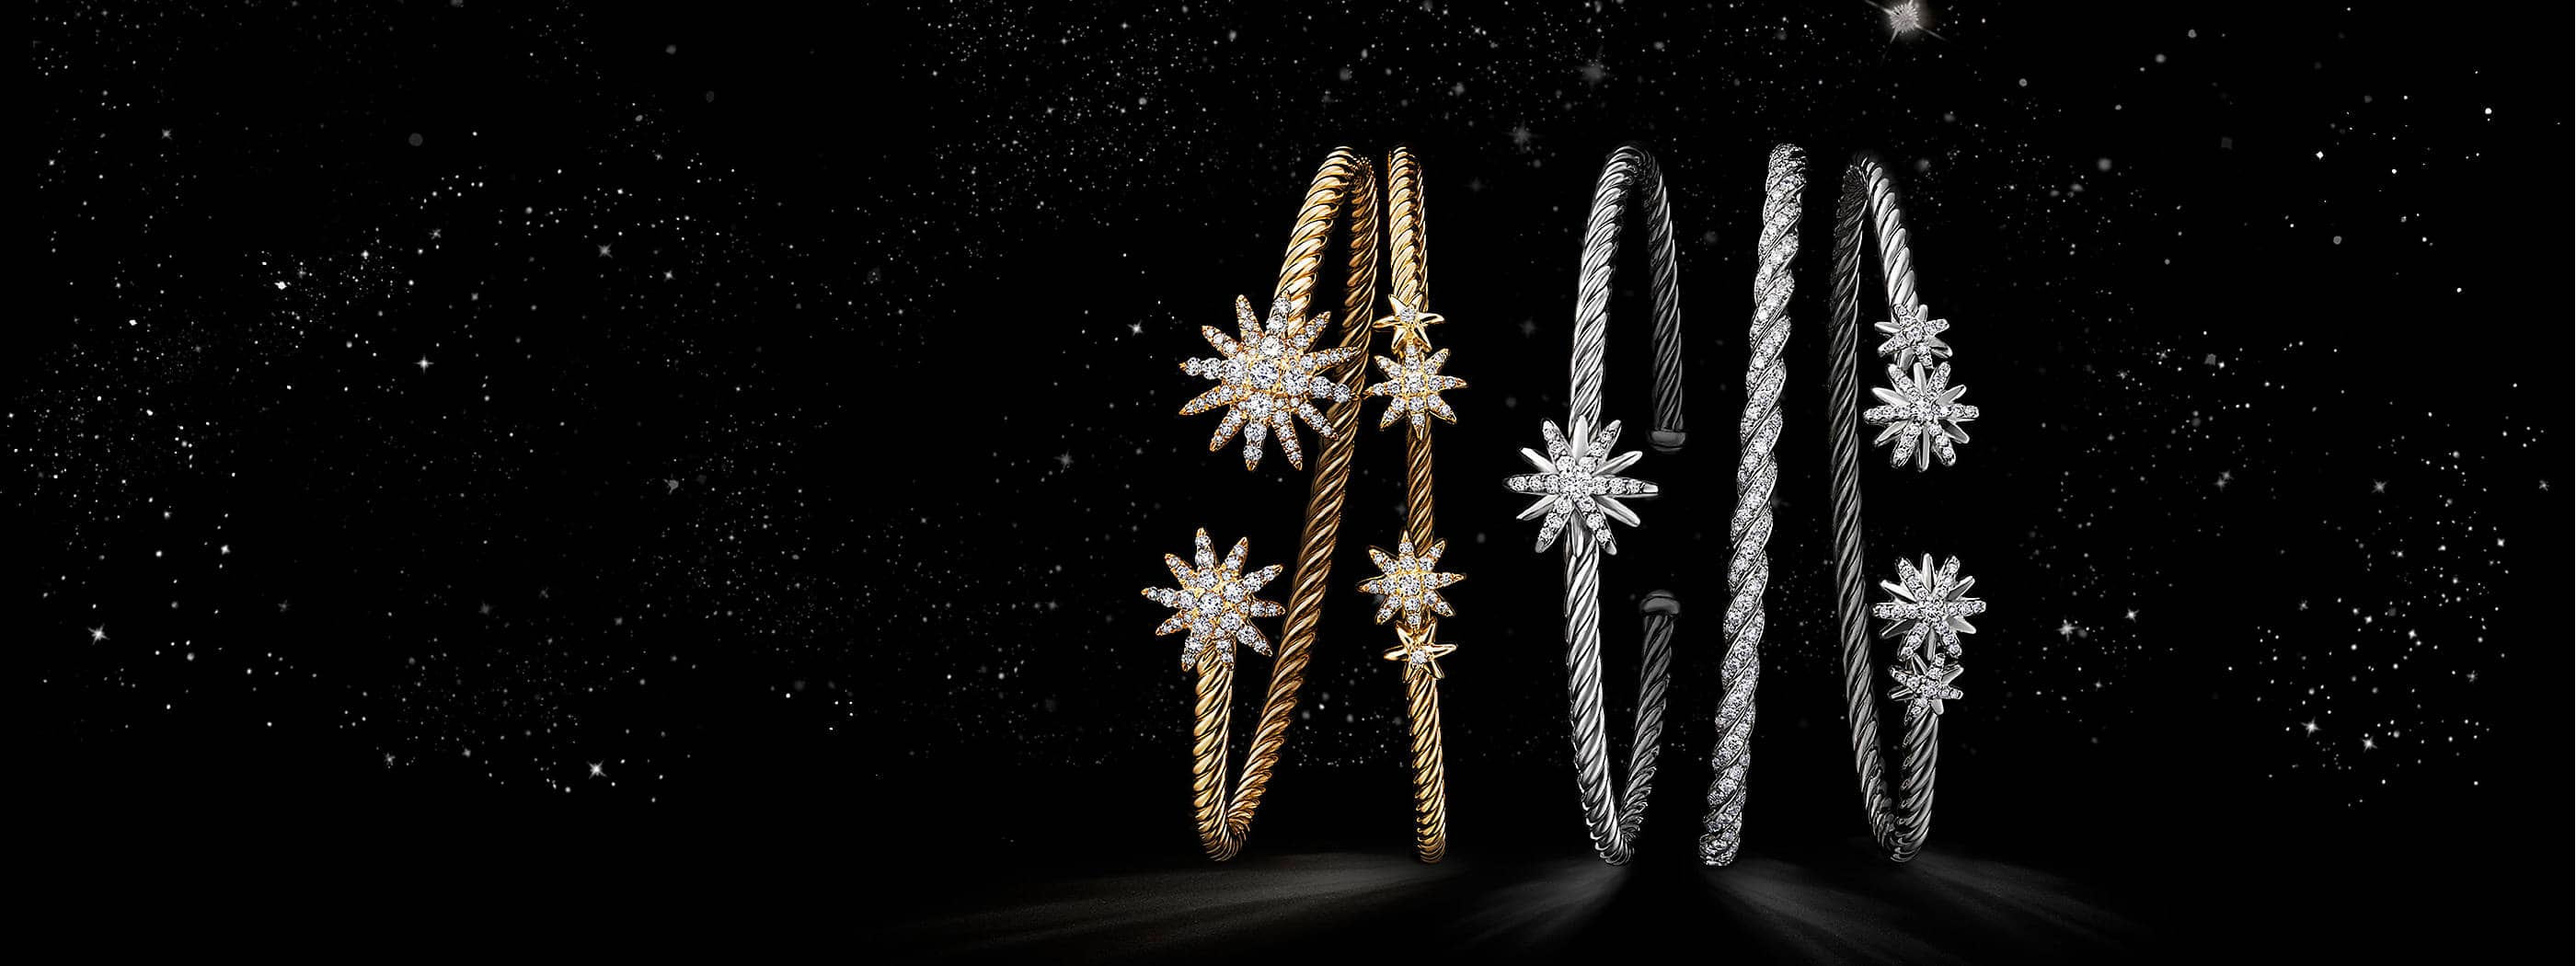 A color photograph shows a horizontal stack of five David Yurman women's bracelets from the Starburst and Pavéflex collections floating in a starry night sky. The jewelry is crafted from 18K white or yellow gold with pavé diamonds or sterling silver with pavé diamonds.